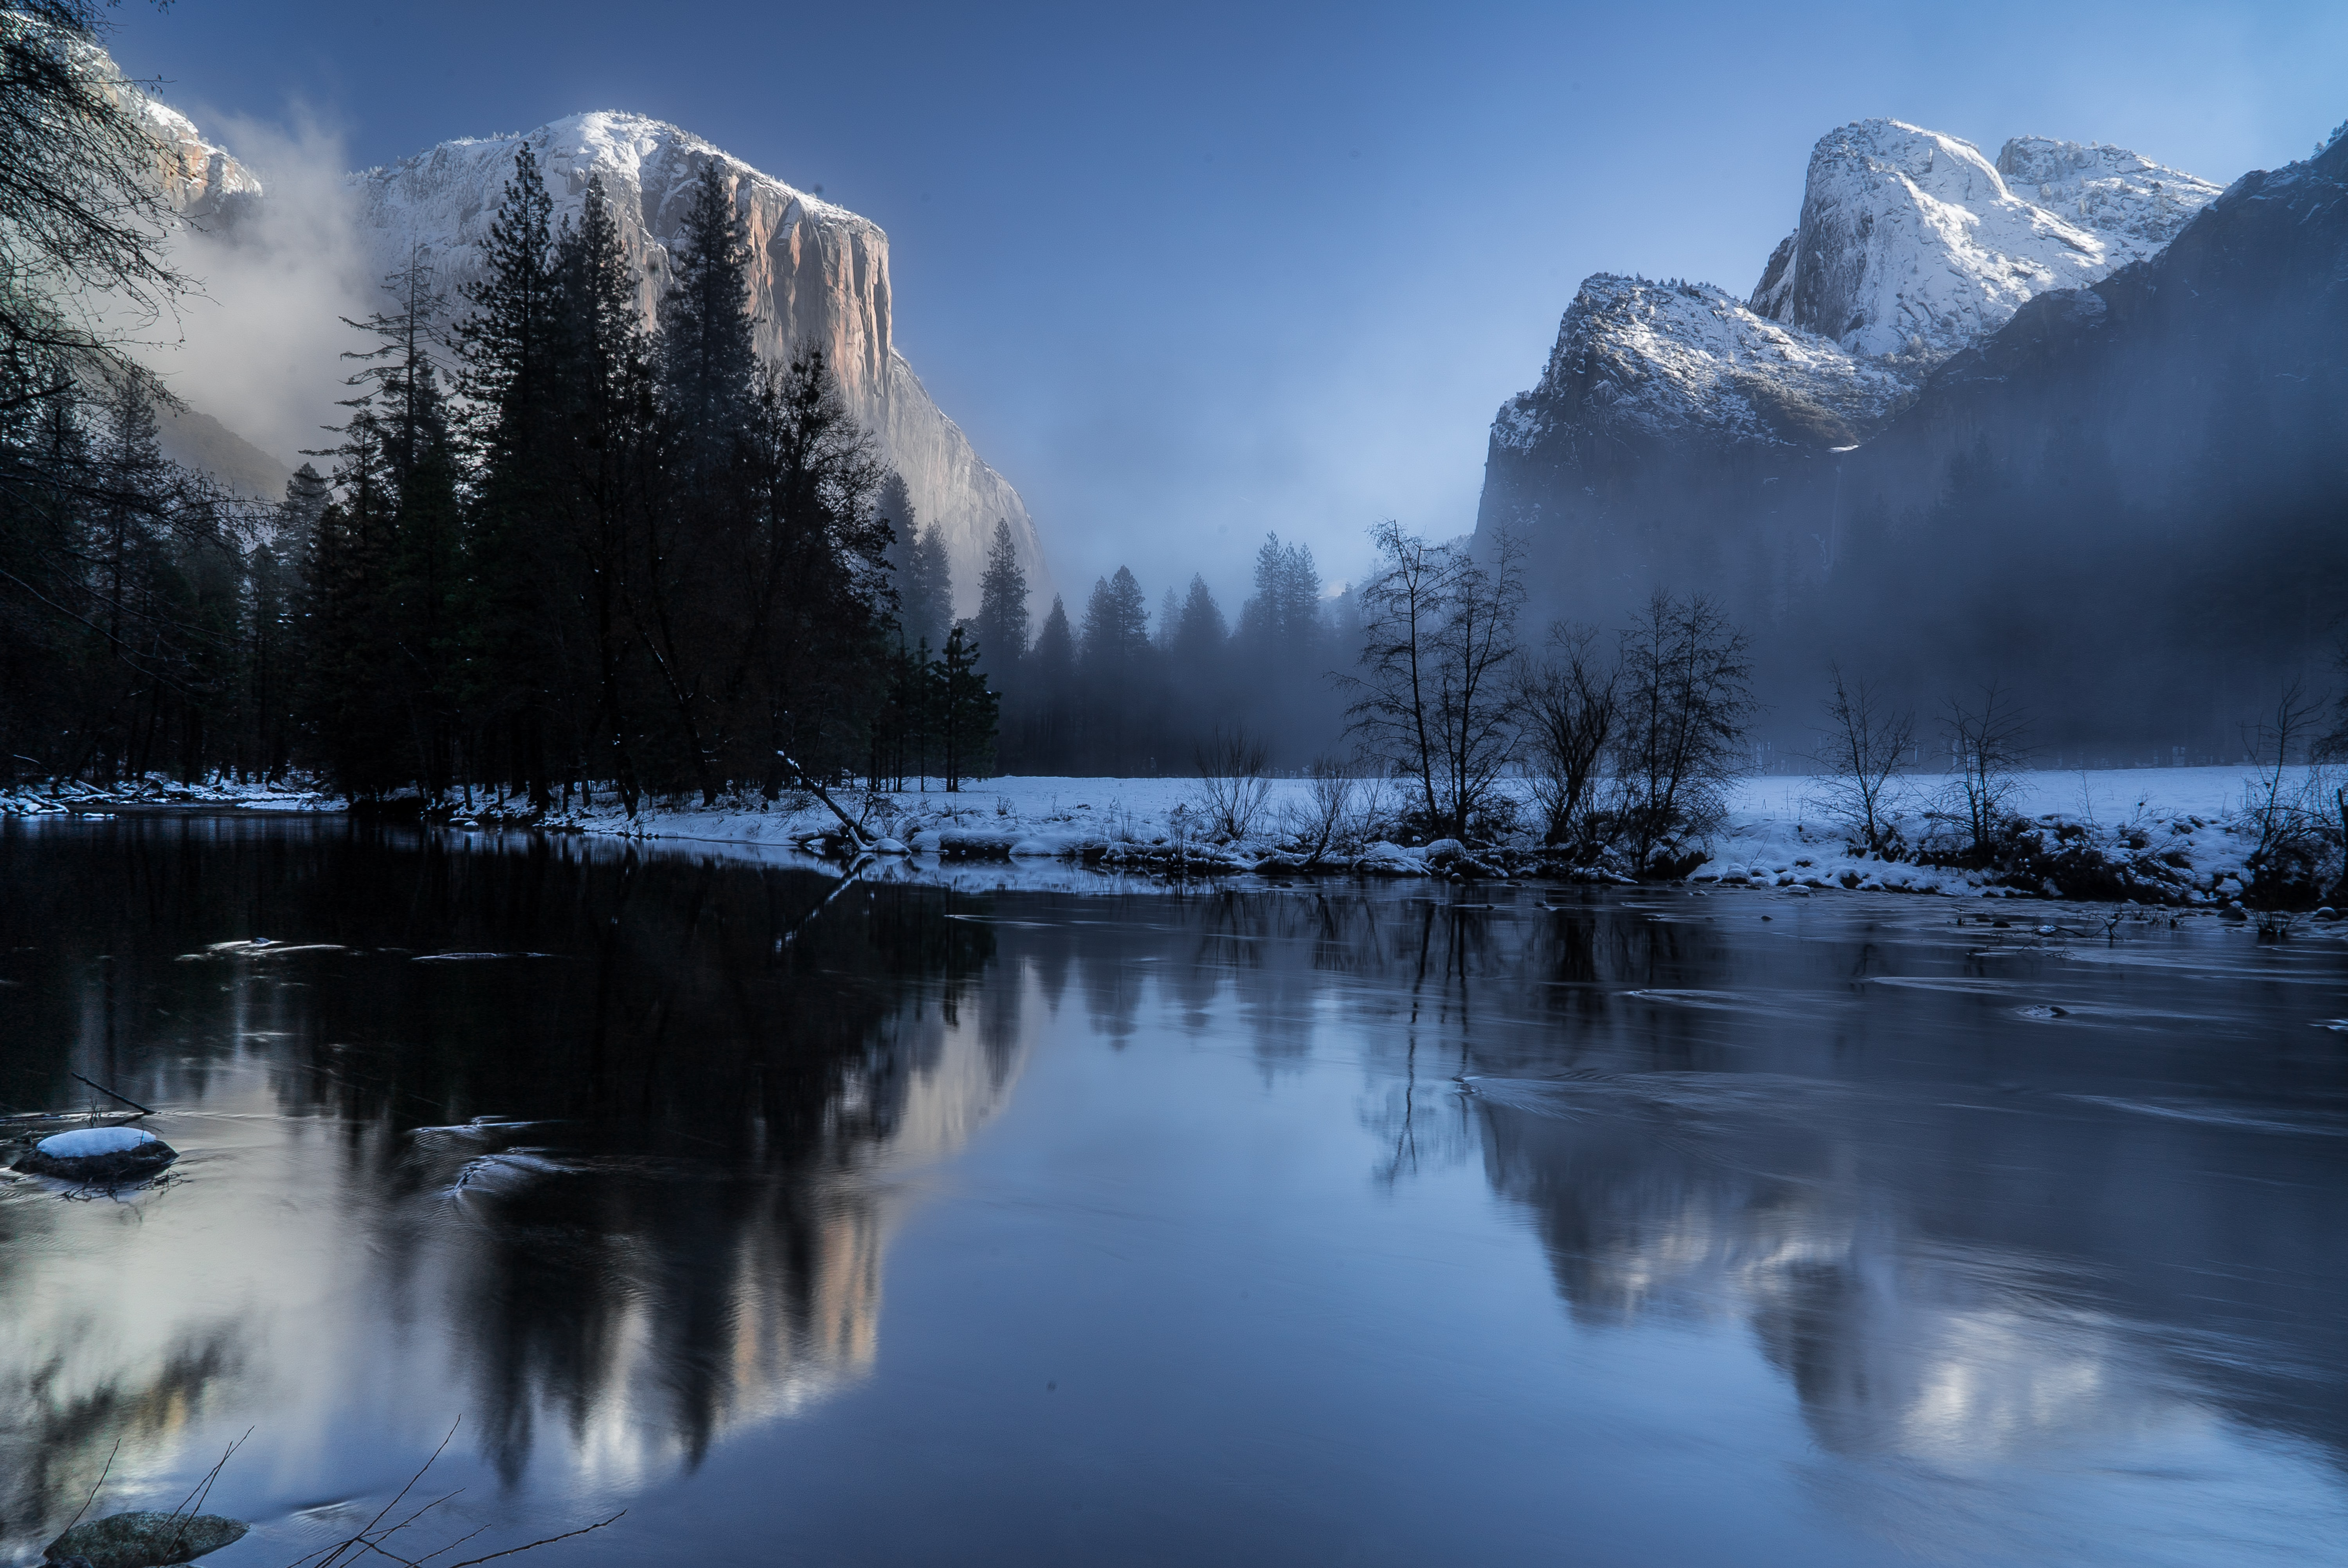 A misty frozen lake with a reflection and view of snow capped mountains in Yosemite Valley